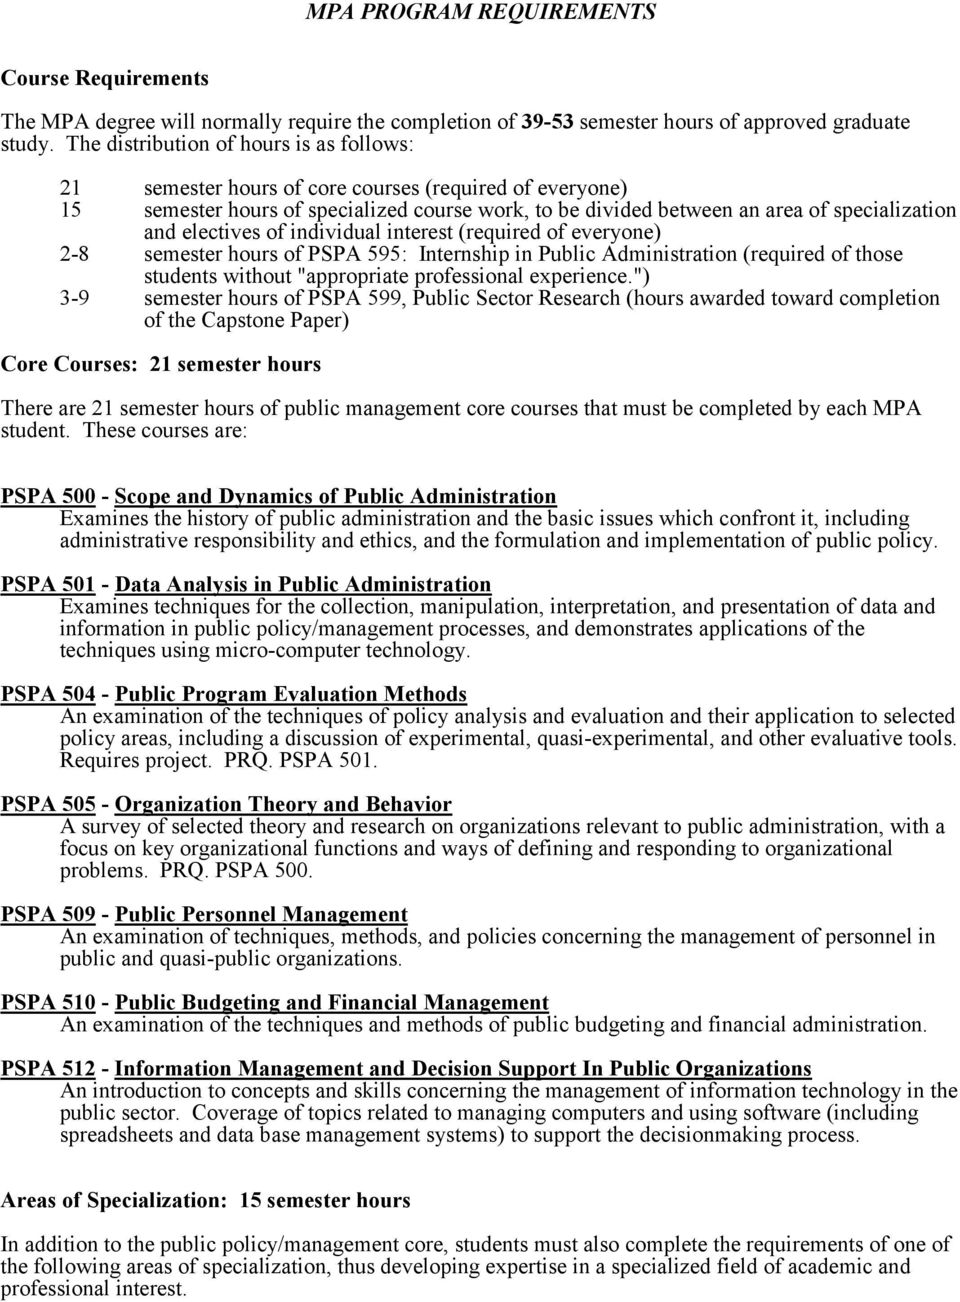 "electives of individual interest (required of everyone) 2-8 semester hours of PSPA 595: Internship in Public Administration (required of those students without ""appropriate professional experience."